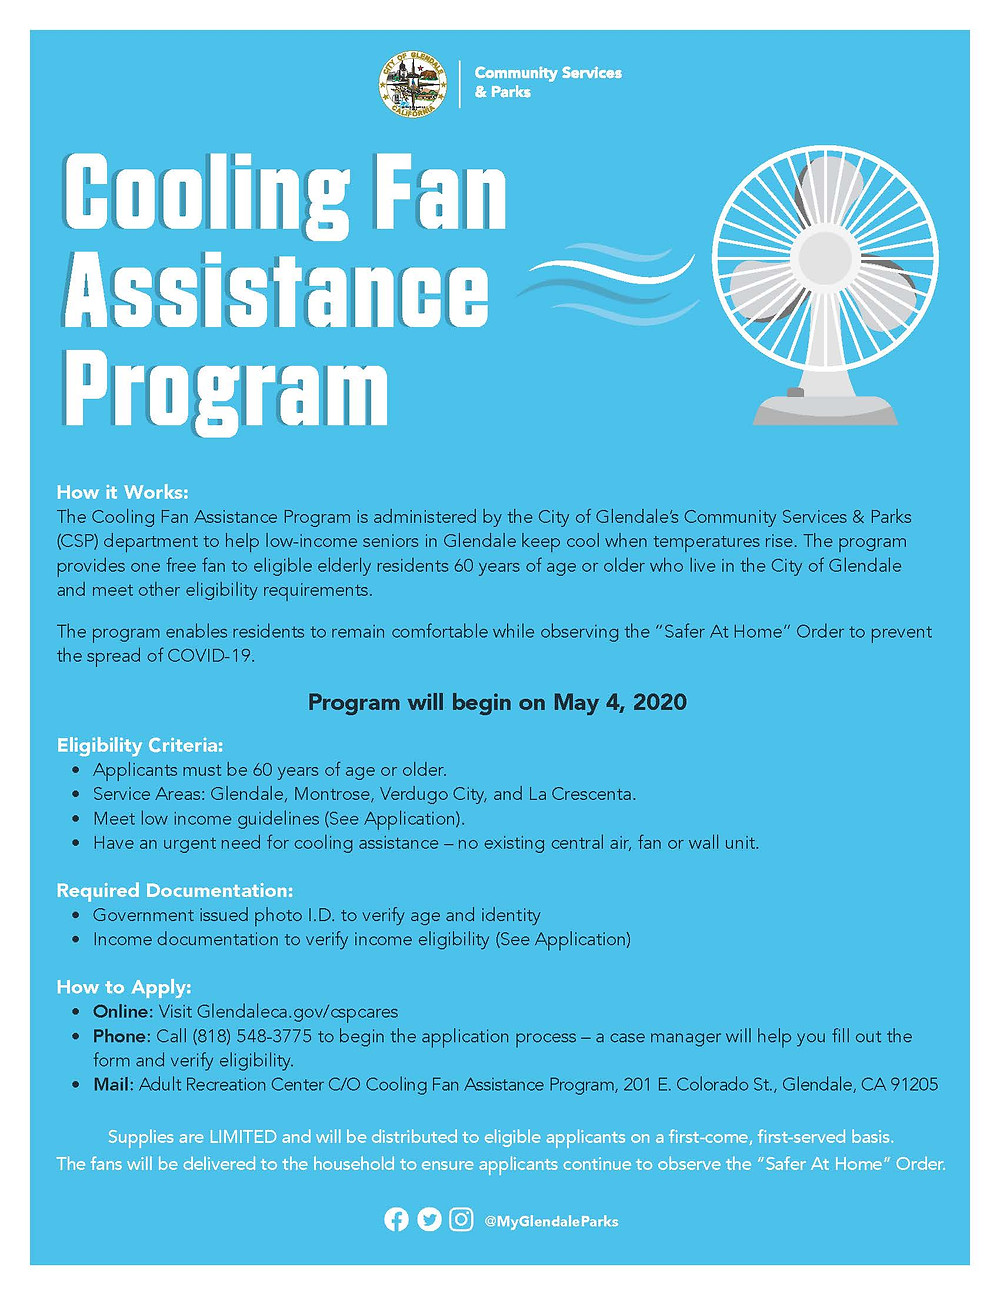 Cooling Fan Assistance Program Flyer; outline show to apply, required documents, and eligibility requirements